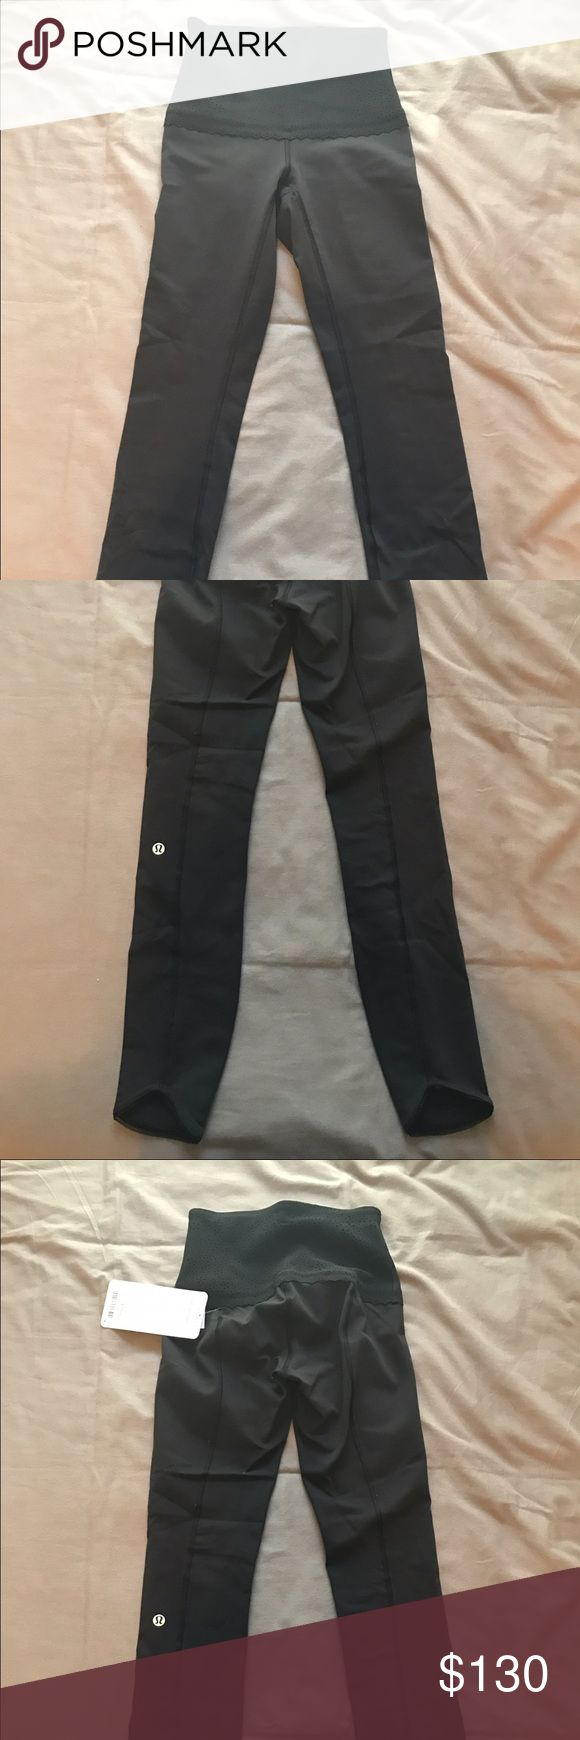 NWT LULULEMON 7/8 BLACK FREE SPIRIT PANT NWT lululemon free spirit pants in size 2! These are rare and have never been worn and are in the color black, they are 7/8 length! I'm willing to negotiate with reasonable offers!! Happy shopping!! lululemon athletica Pants Leggings